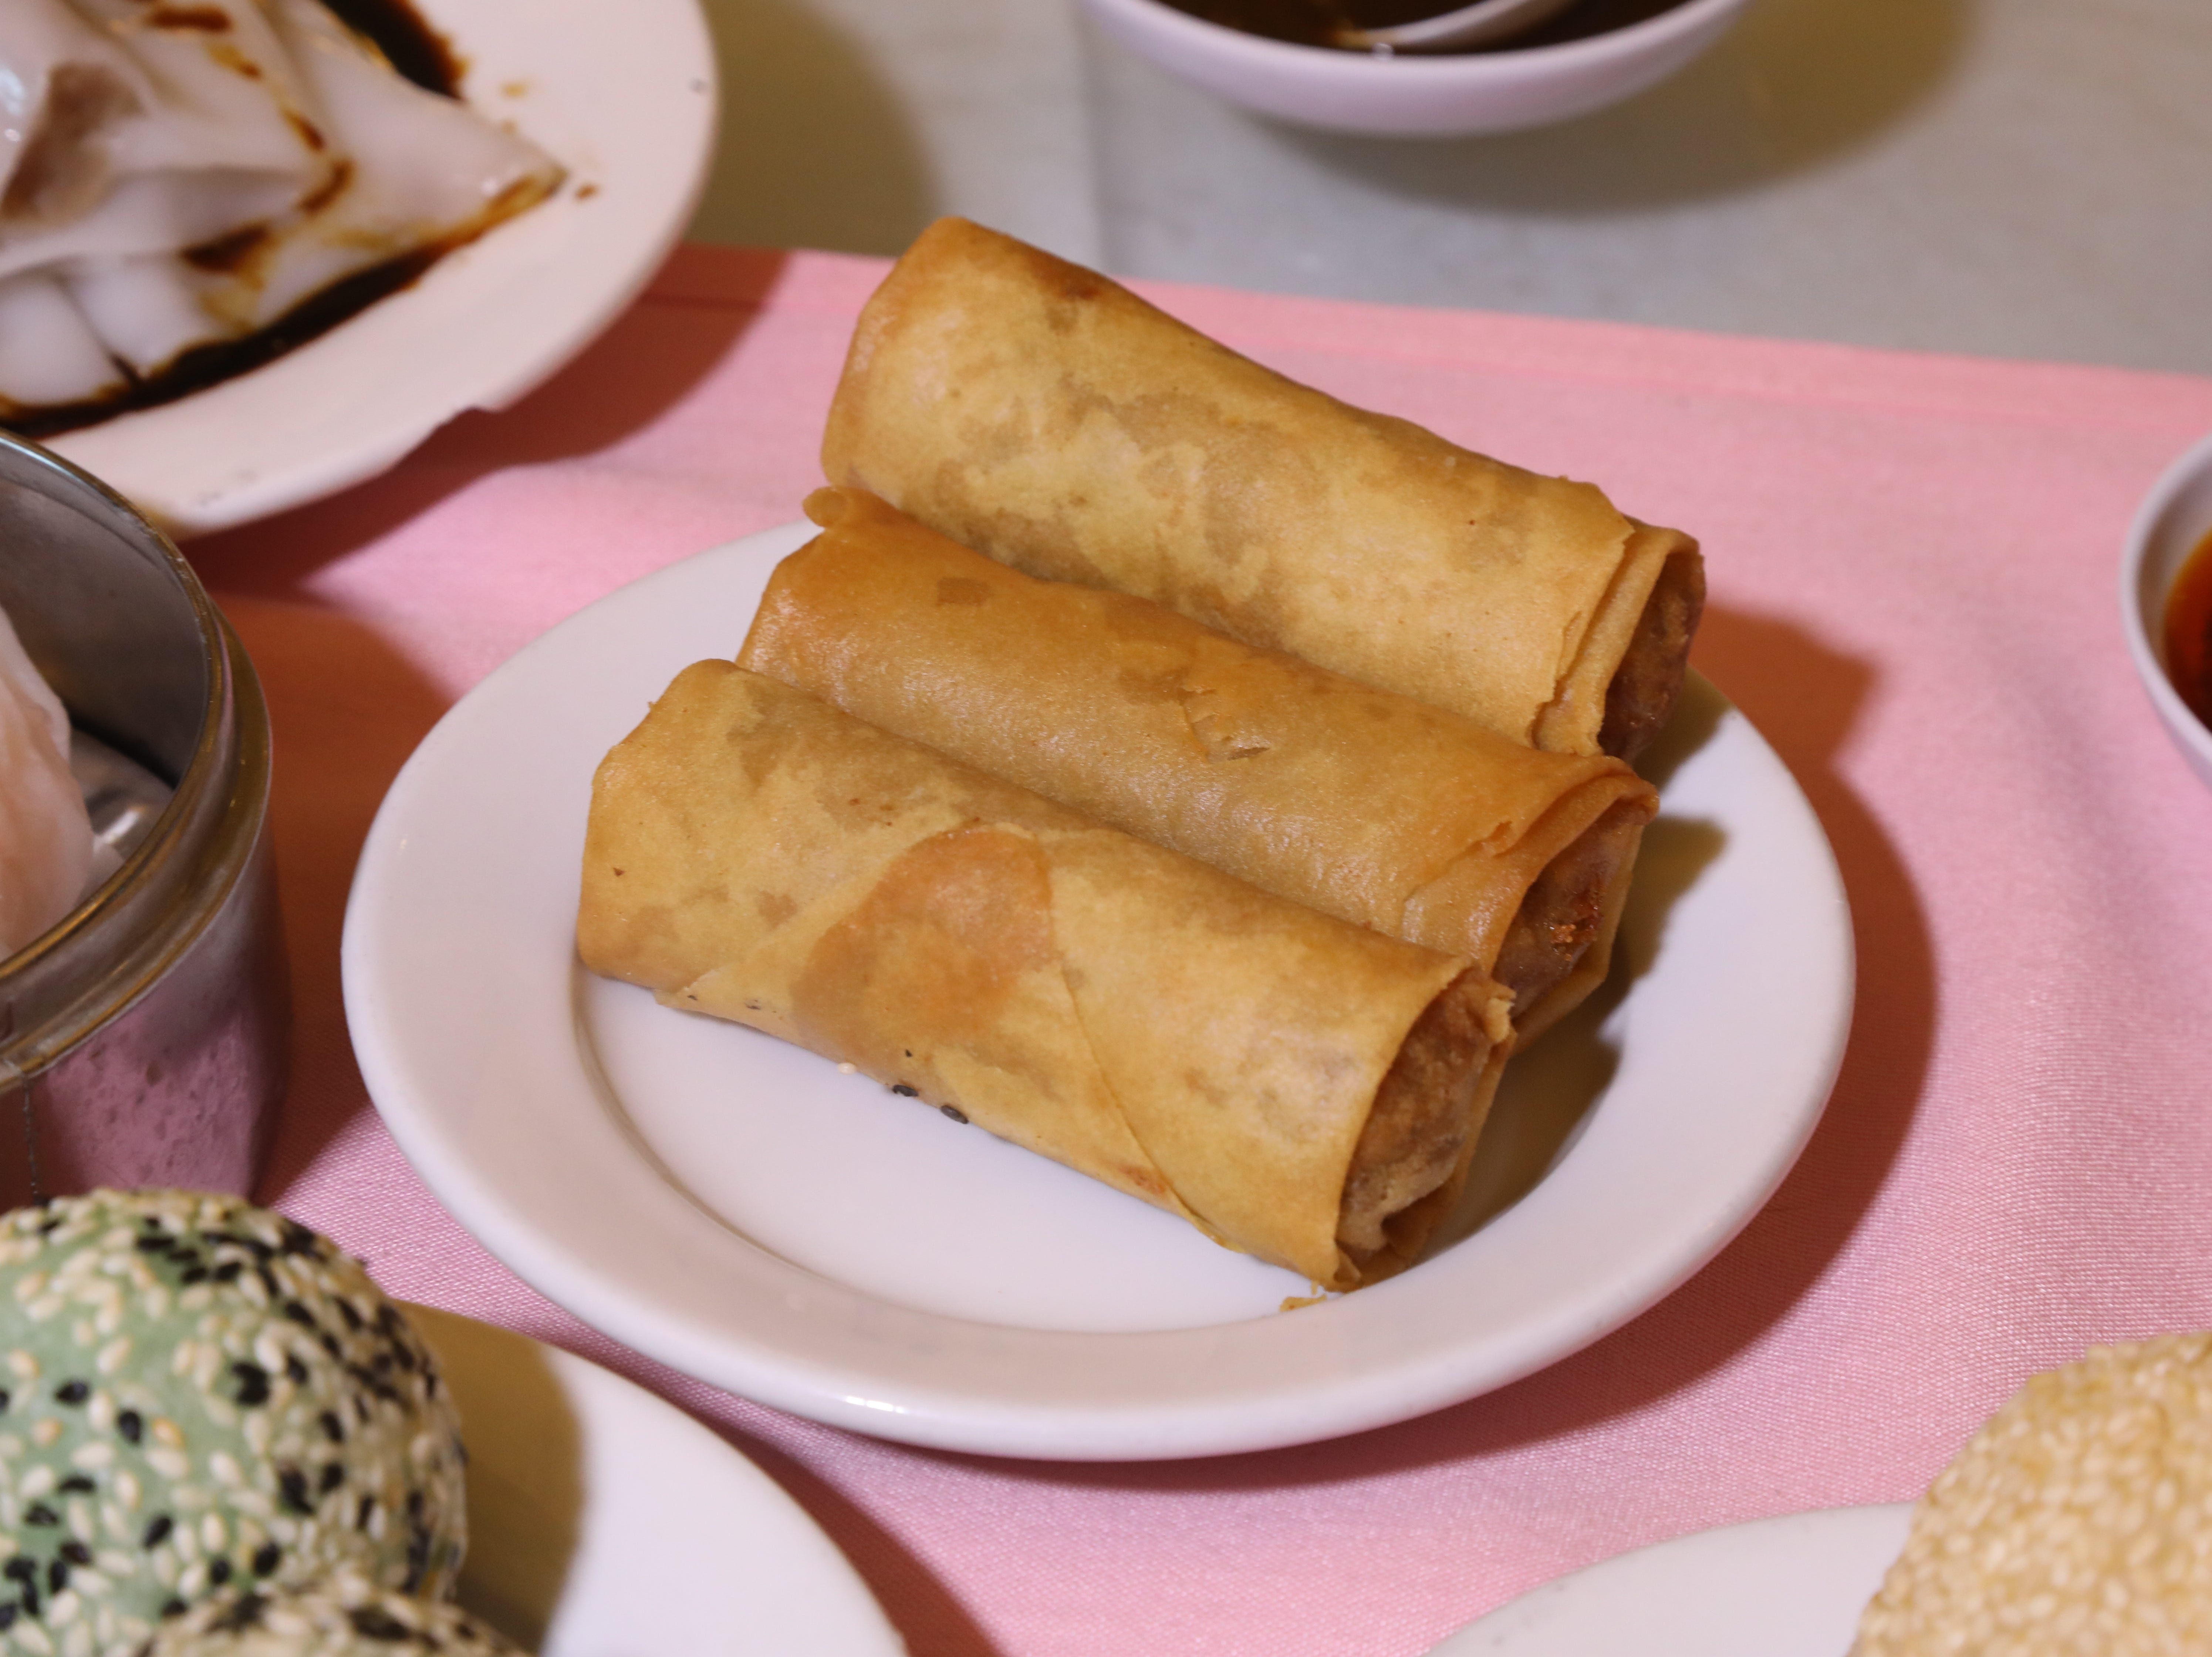 Spring rolls are part of the large selection of appetizers at Noodle Wong.